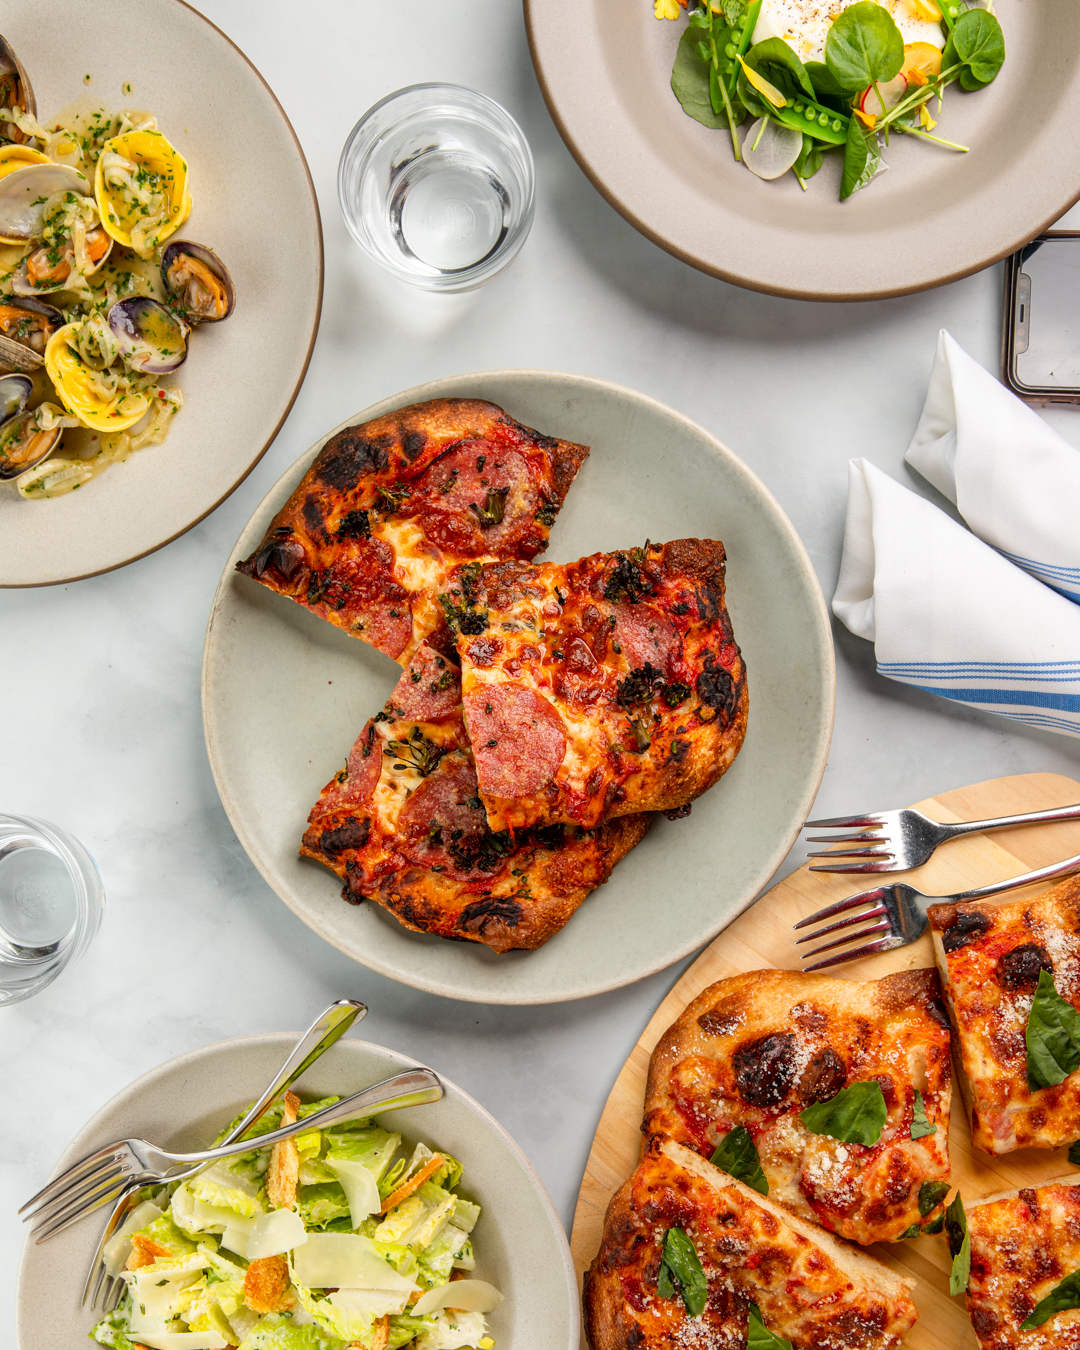 An overhead photograph of several plates filled with Italian dishes, including slices of pizza, pasta, and clams